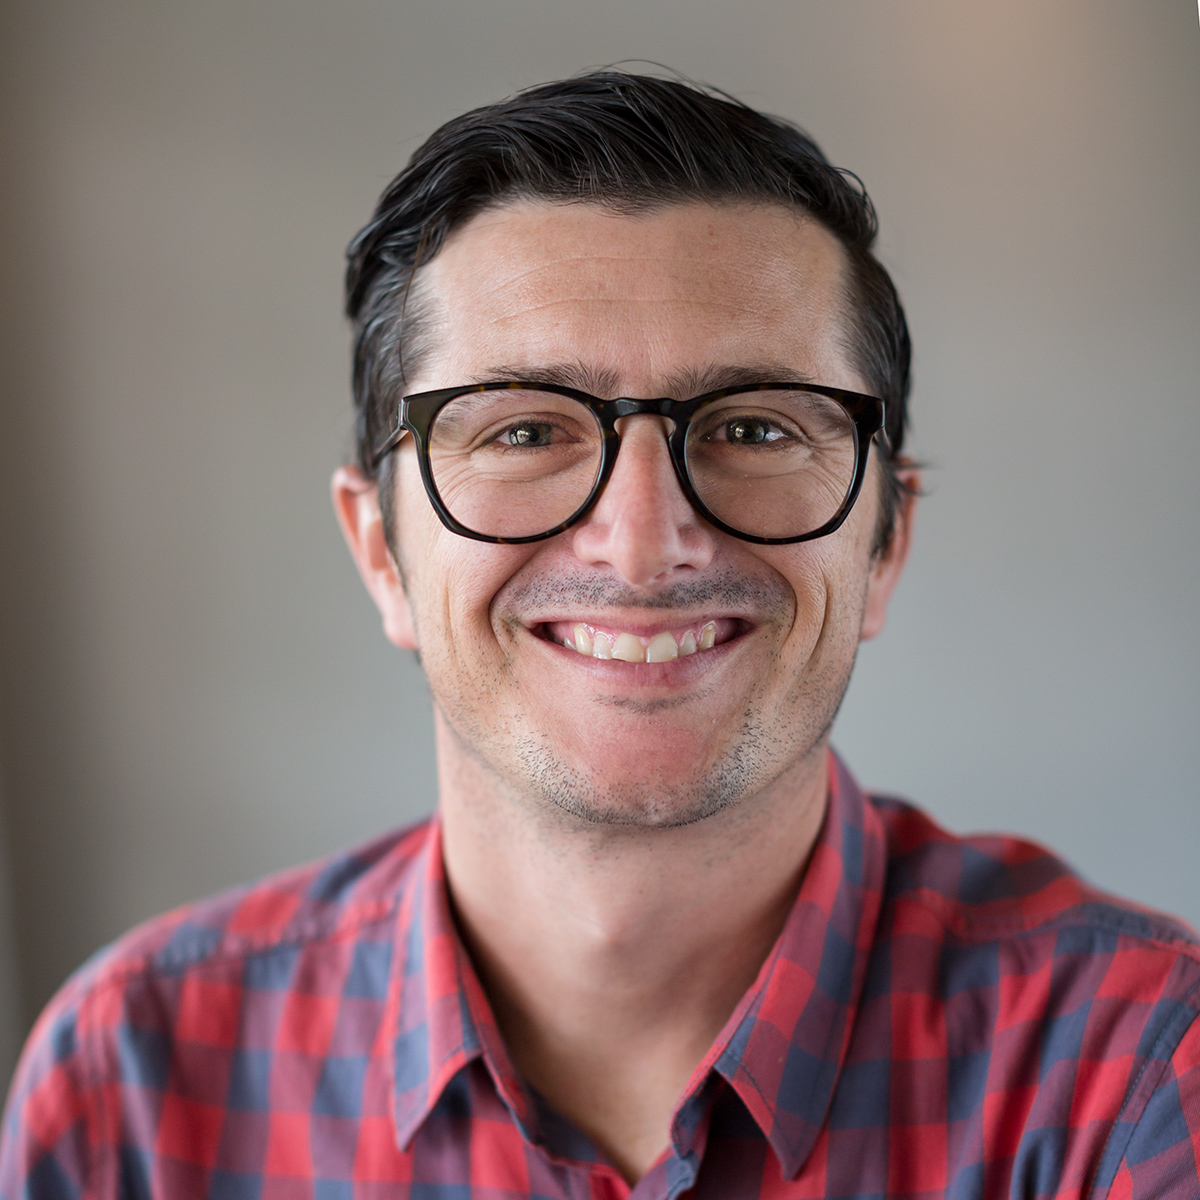 DANIEL LONG - INTERIM LEAD PASTOR | Provides pastoral oversight of whole community, serving as interim co-leader of church, preachesE | dlong@gracelb.orgT | (562) 595-6881 X1009